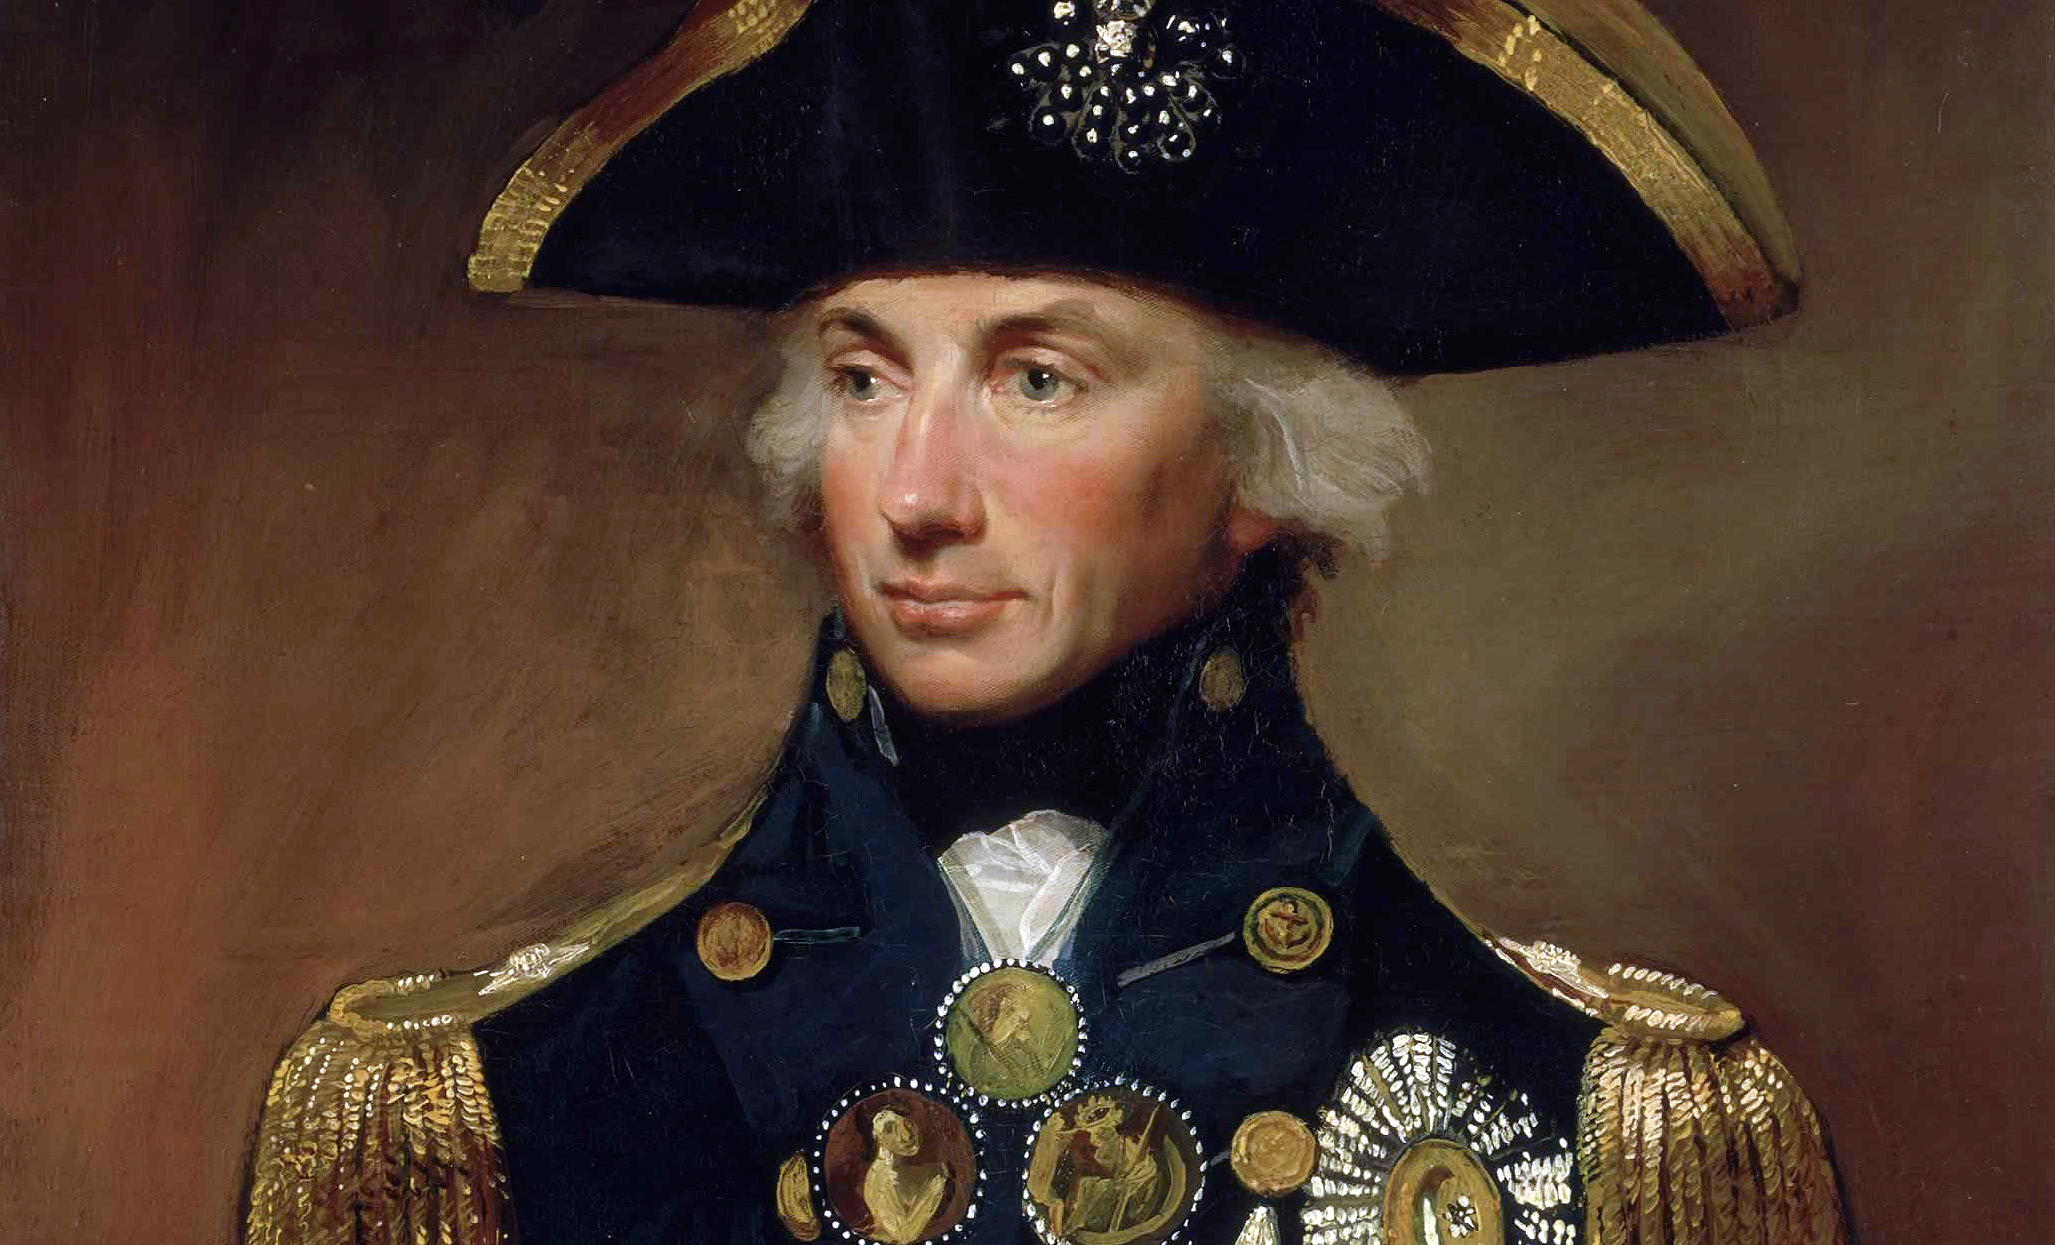 The life of horatio nelson by tales of curiosity.